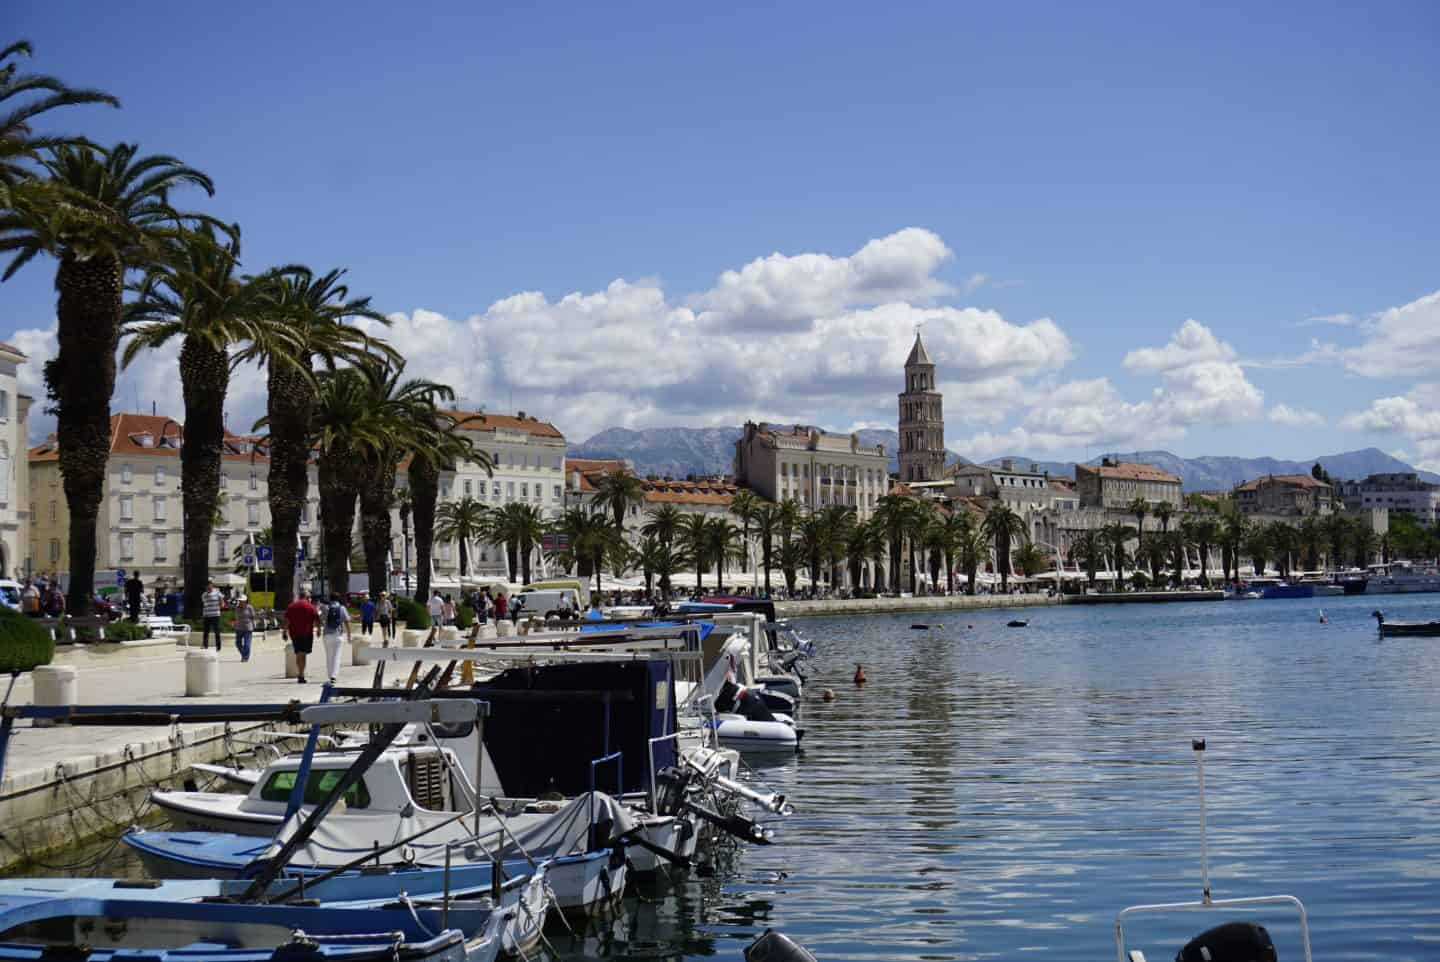 Split's promenade along side the Adriatic, overlooking Diocletian's Palace, with the Dinaric Alps in the background.